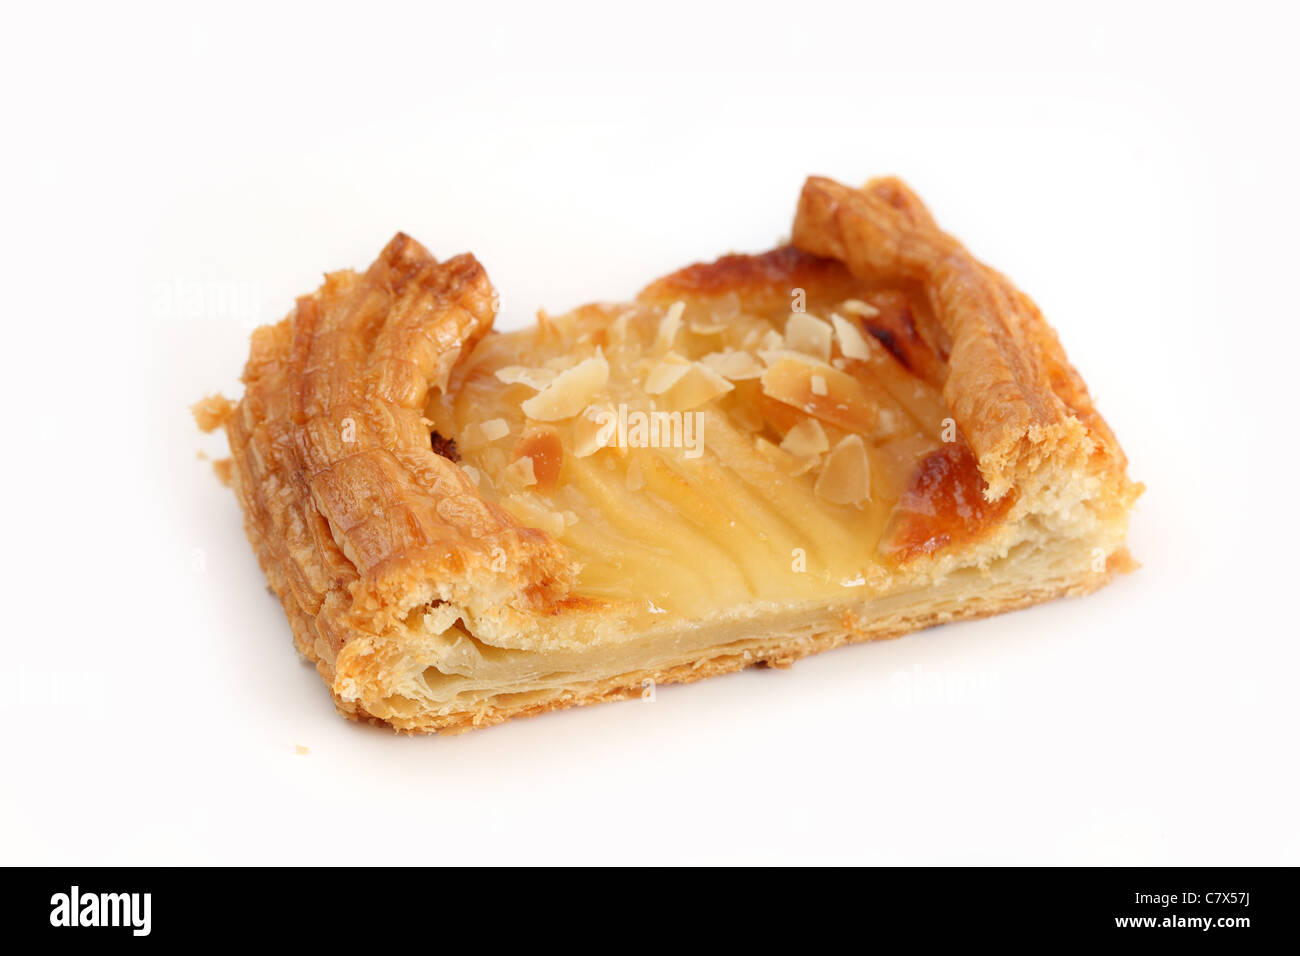 Bande poire-amandes Pear-Almond Band - Stock Image